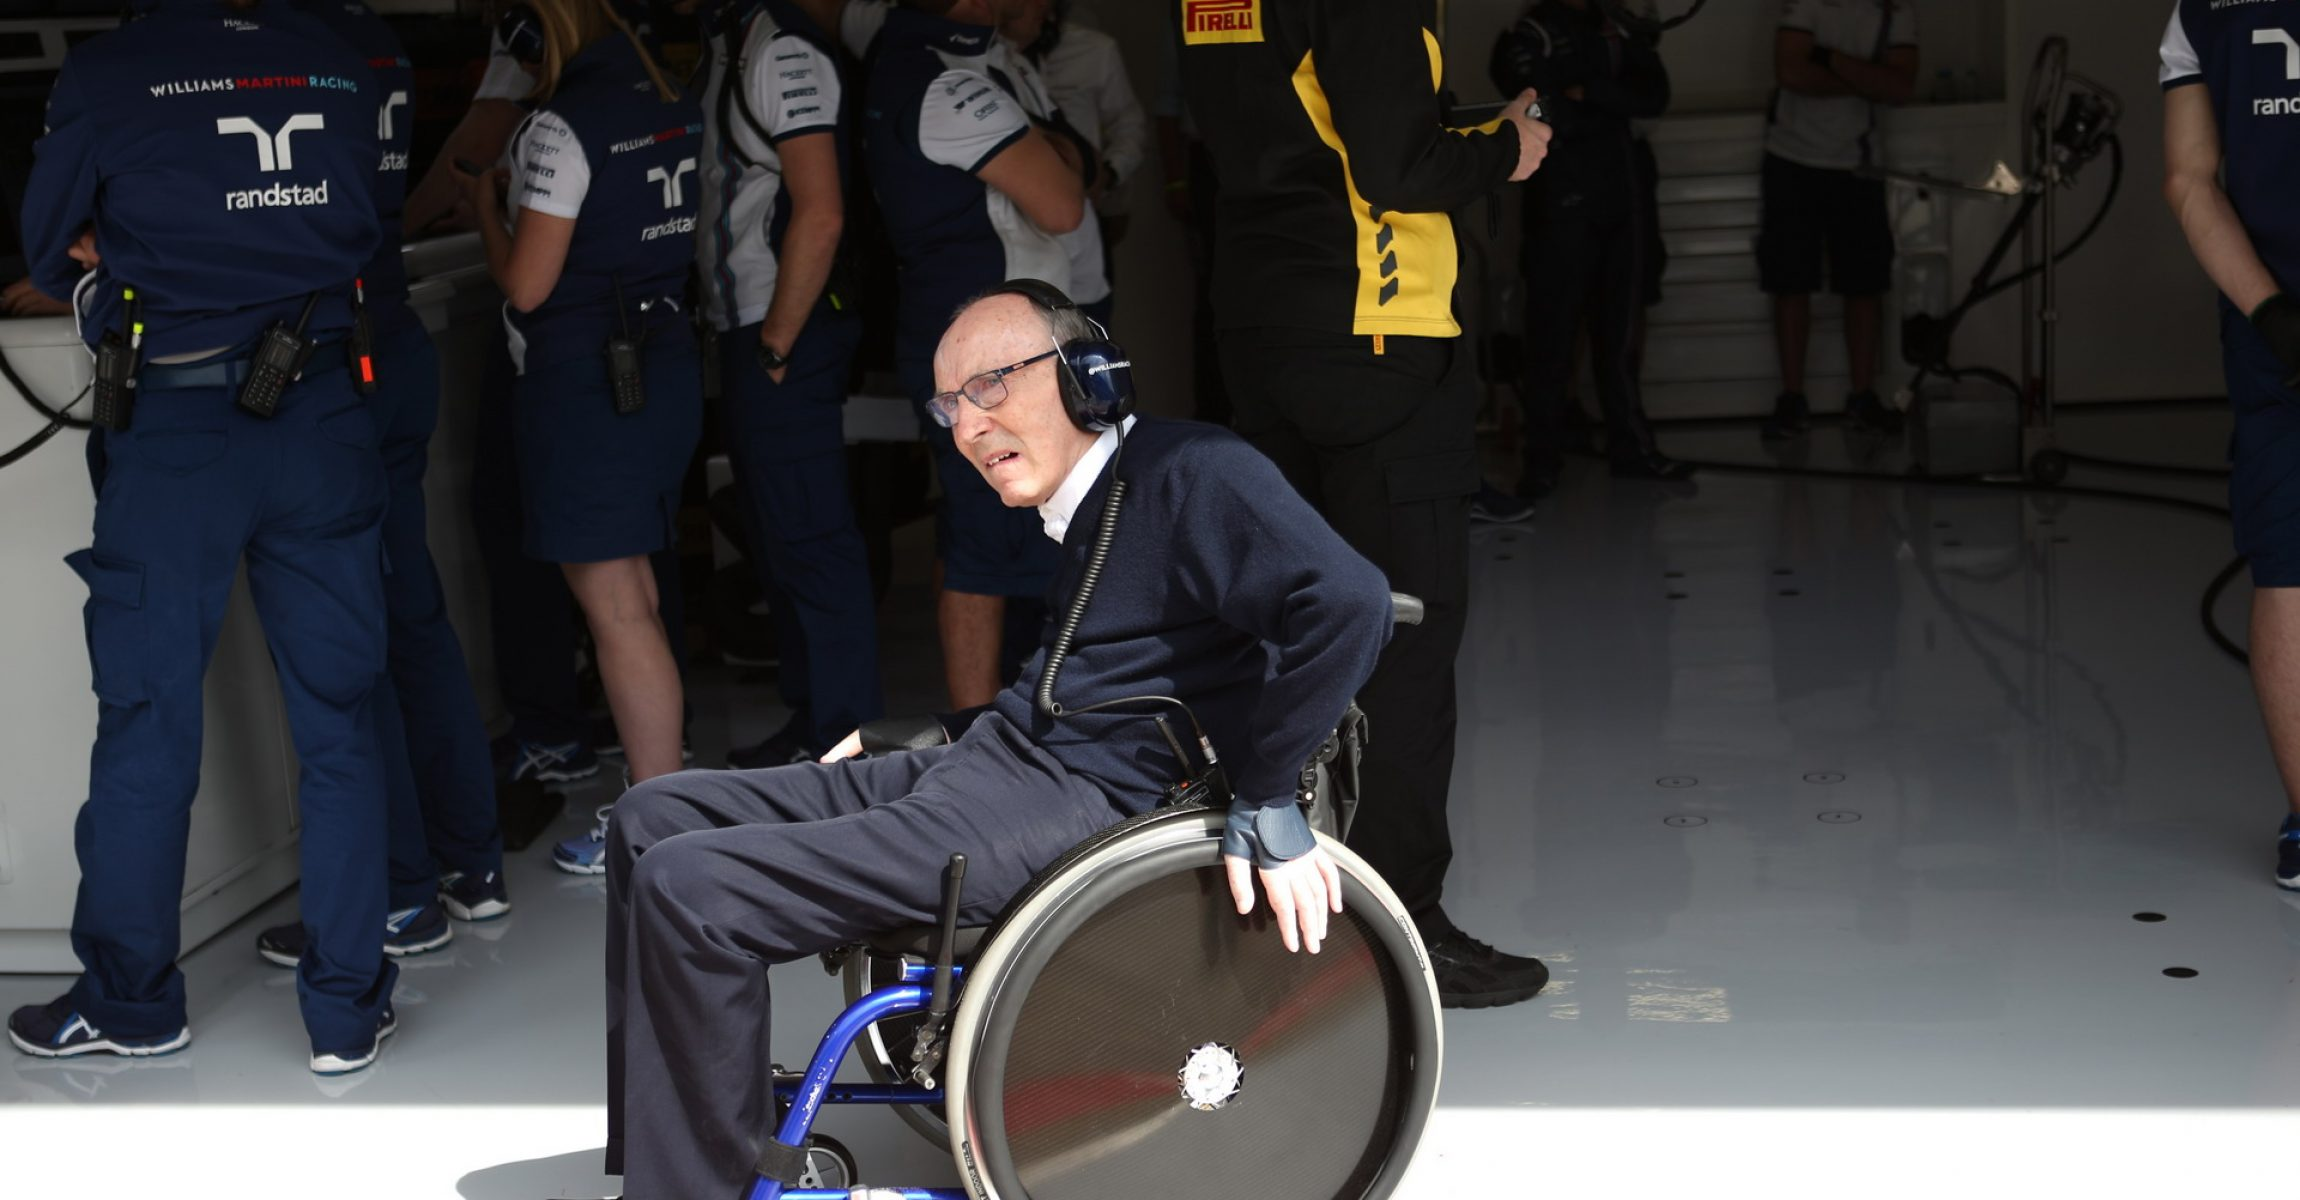 SPIELBERG,AUSTRIA,19.JUN.15 - MOTORSPORTS, FORMULA 1 - Grand Prix of Austria, Red Bull Ring, free practice. Image shows team owner Frank Williams (Williams).. Photo: GEPA pictures/ Andreas Pranter - For editorial use only. Image is free of charge.